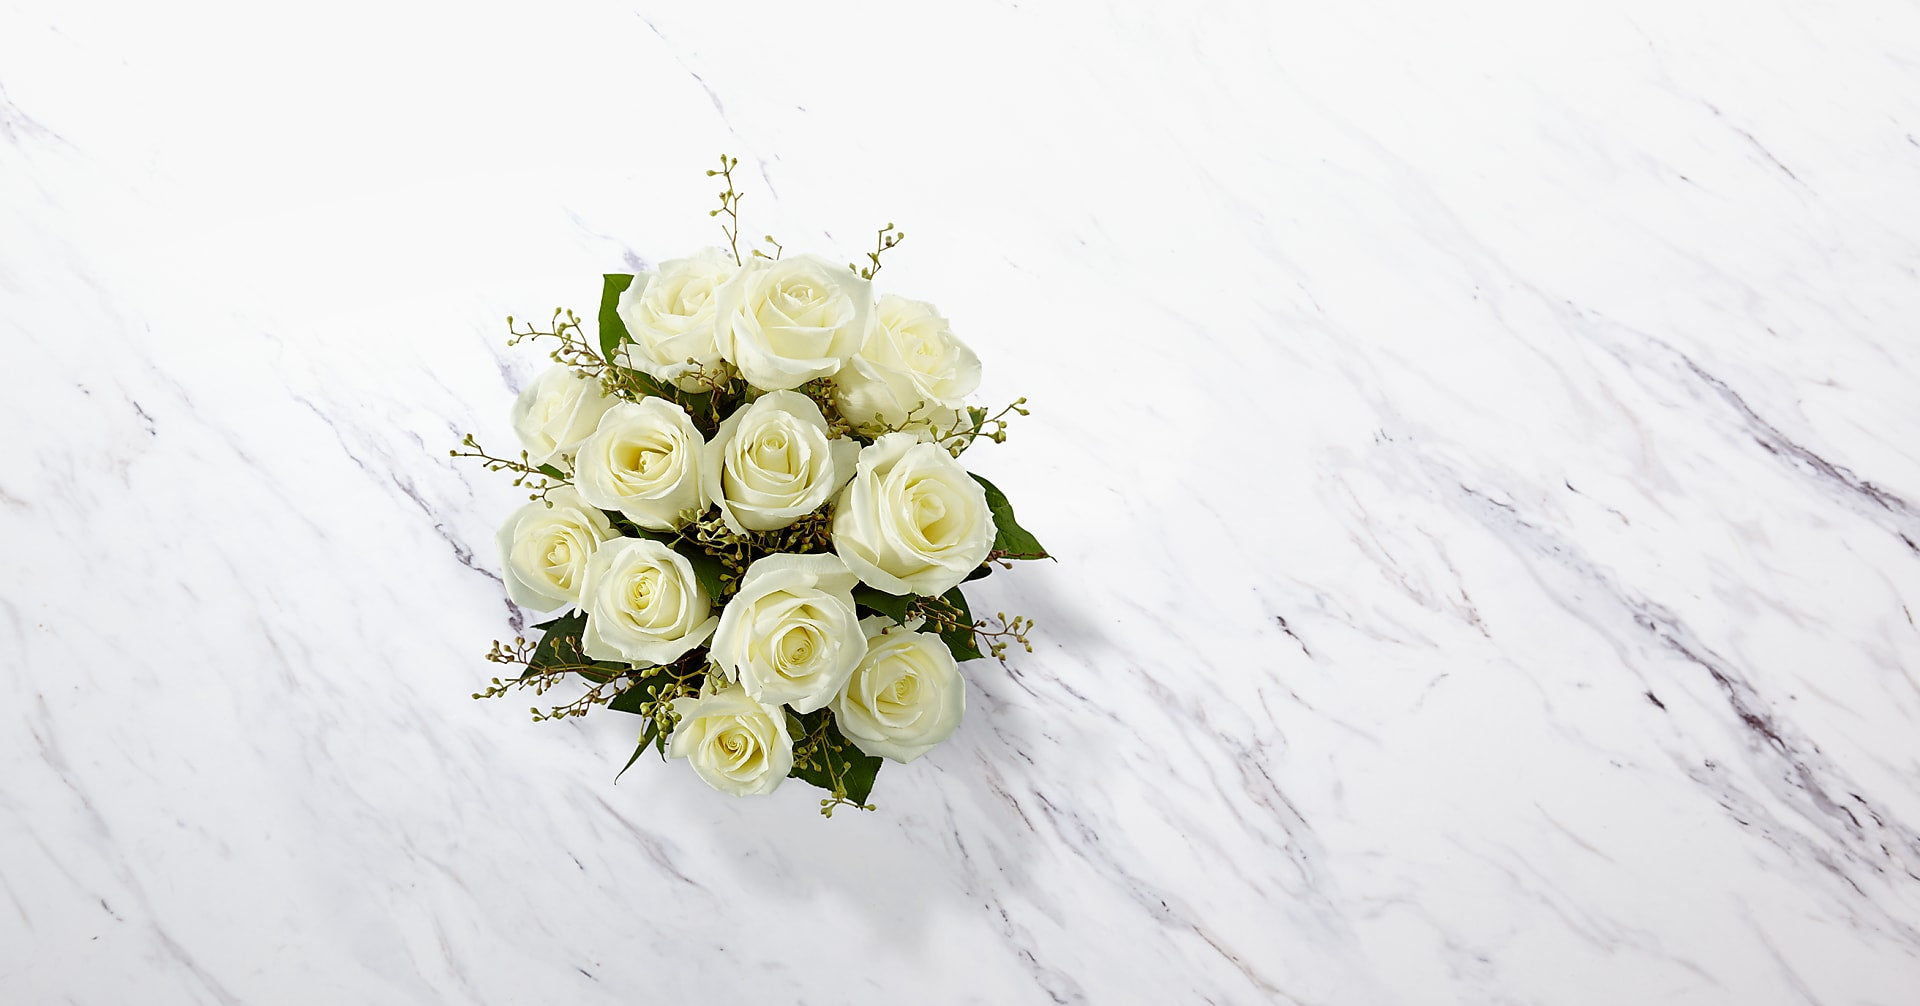 The White Rose Bouquet - Image 2 Of 2